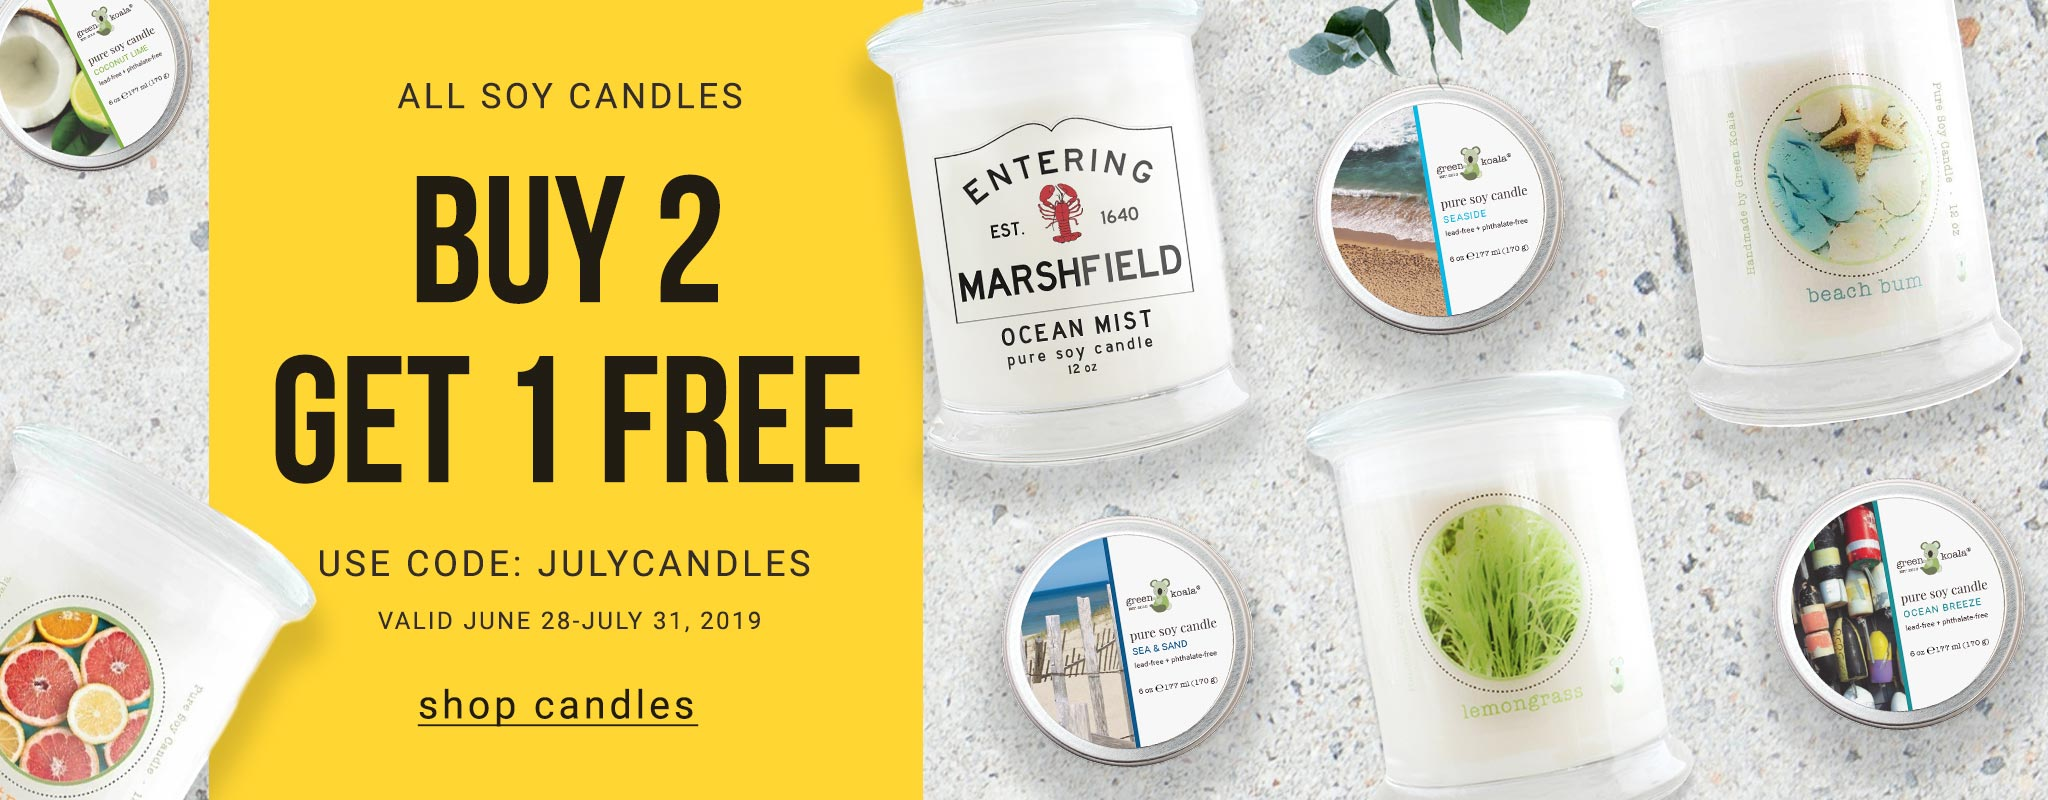 Buy 2 Soy Candles Get 1 Free